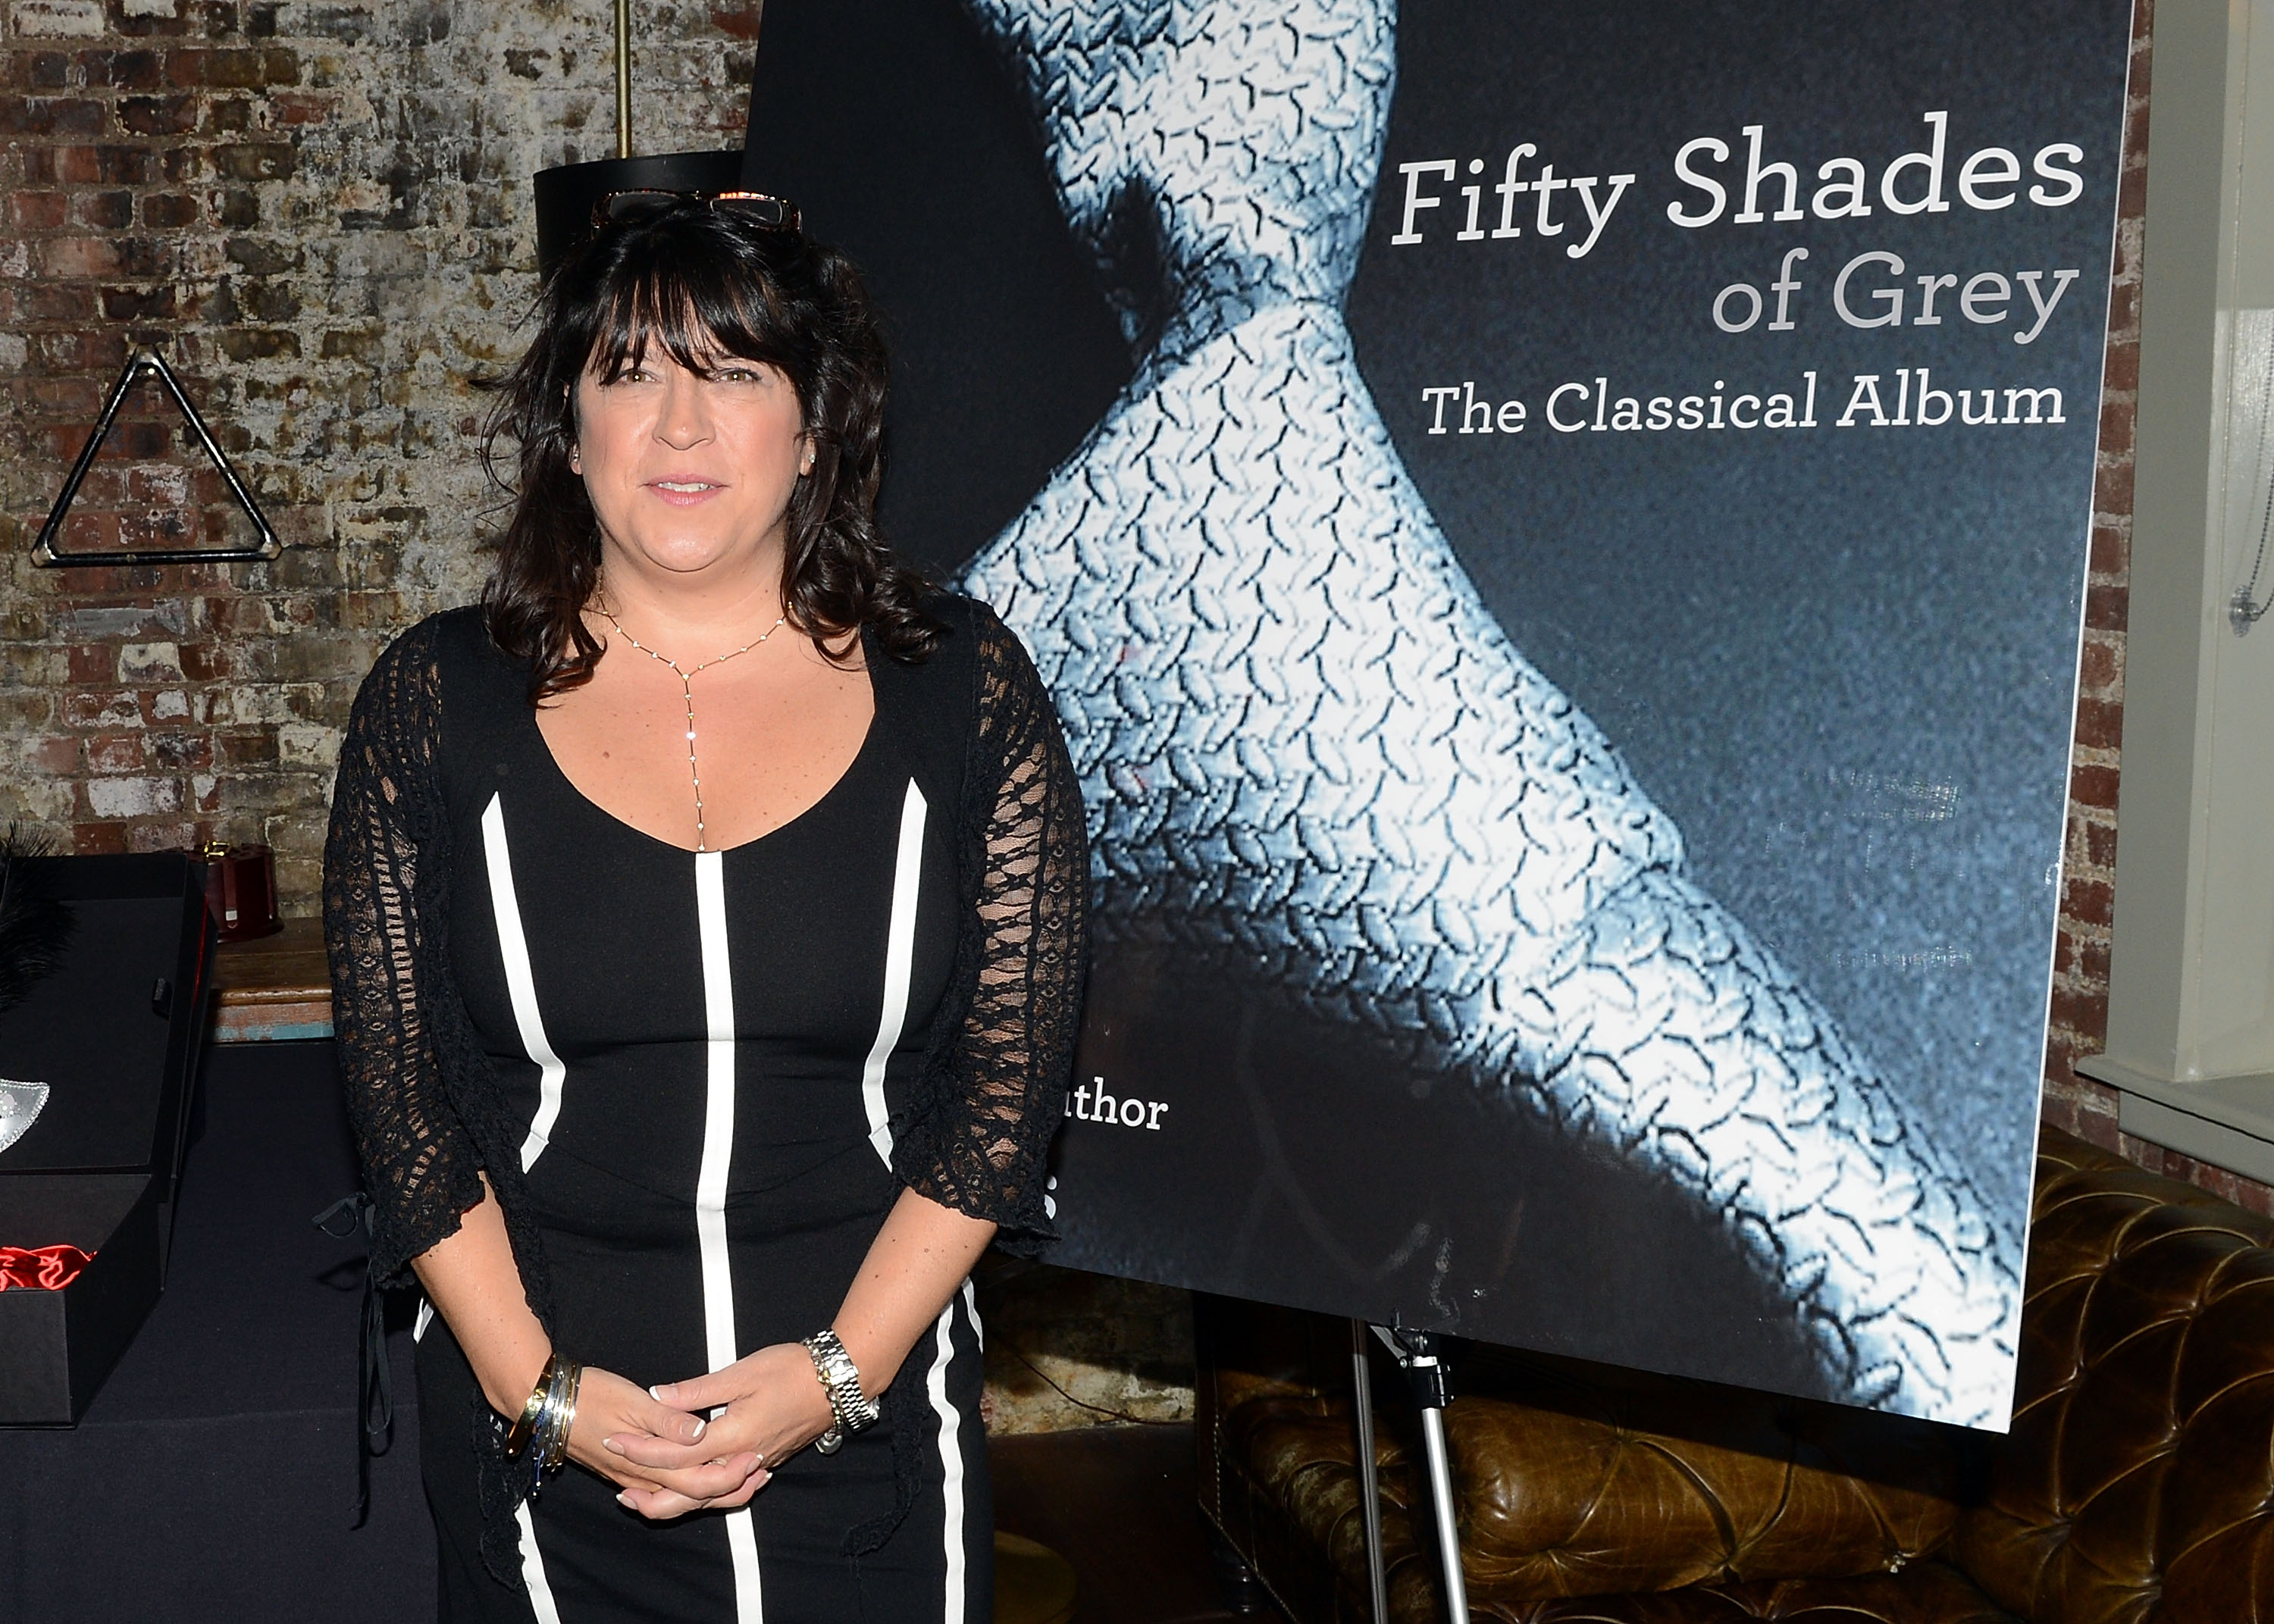 50 Shades Of Grey And Harry Potter Have More In Common Than You Think